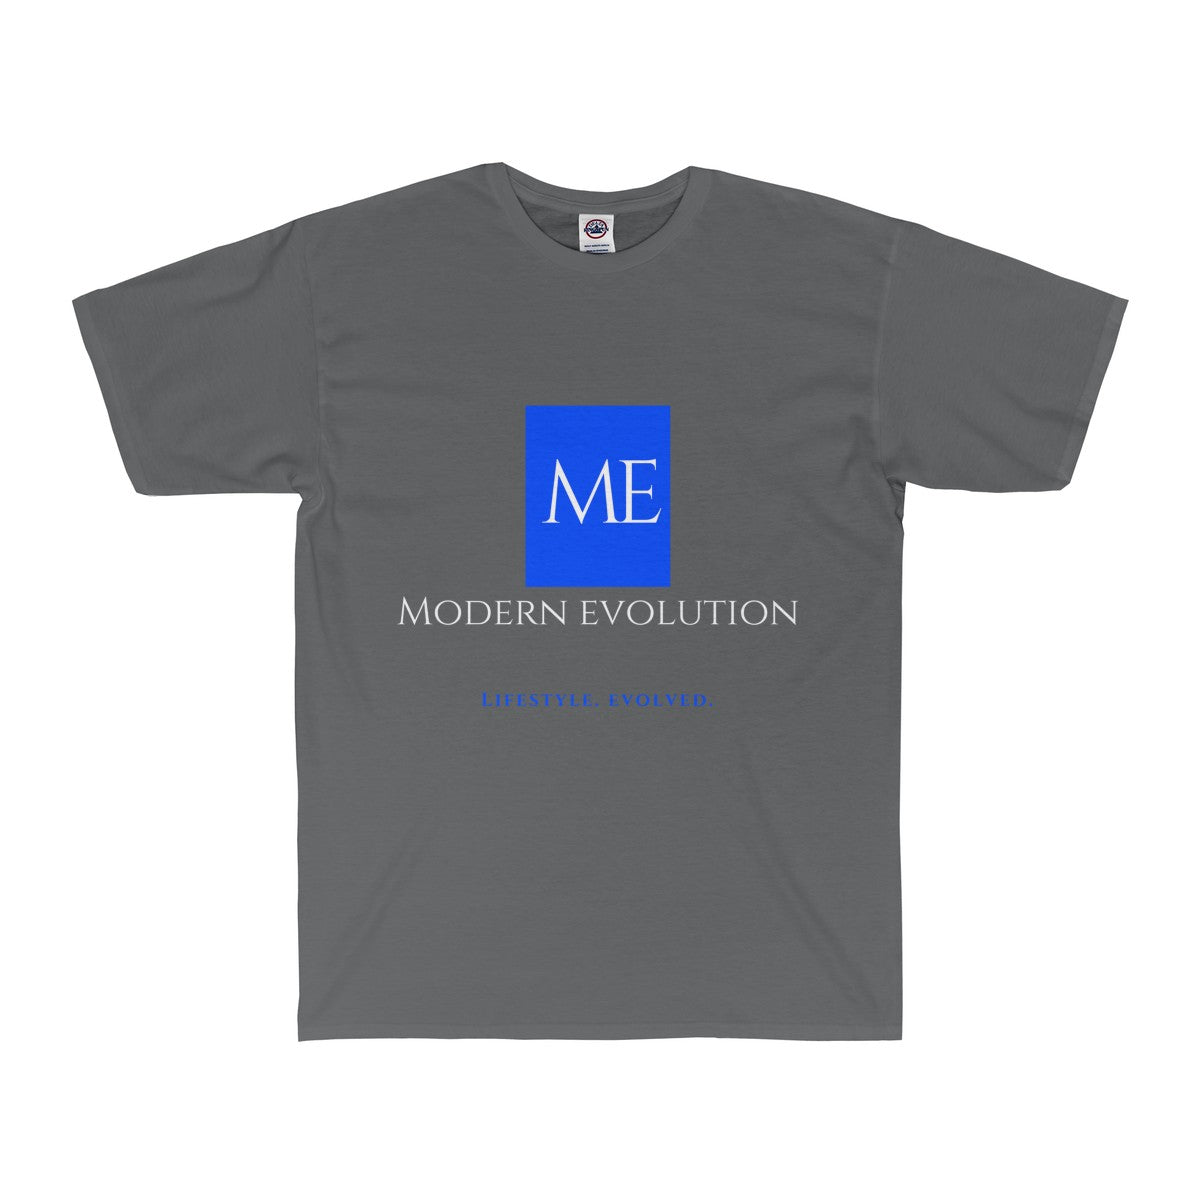 Sexy grey modern evolution shirt with big logo front. blue label white lettering.